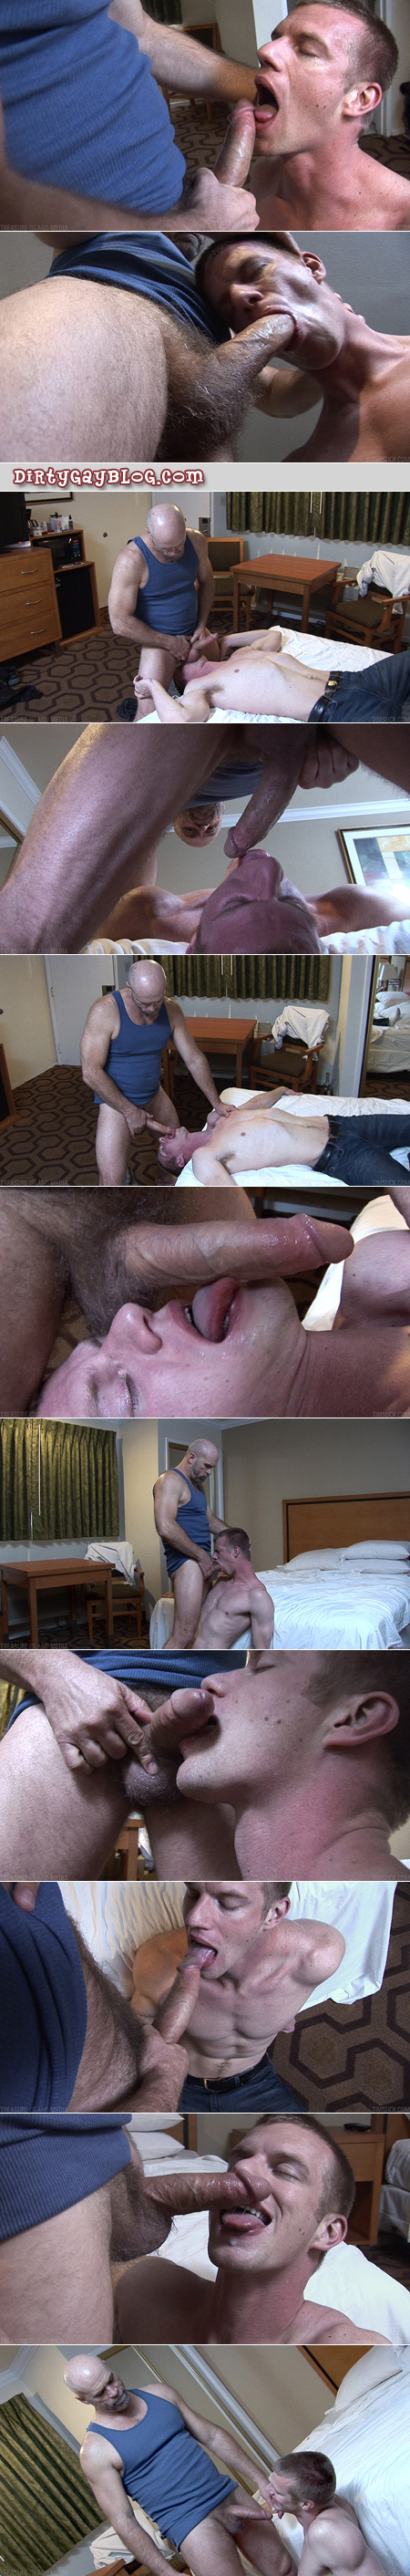 Hairy older man feeds his cock and cum to a younger cock-worshipper.